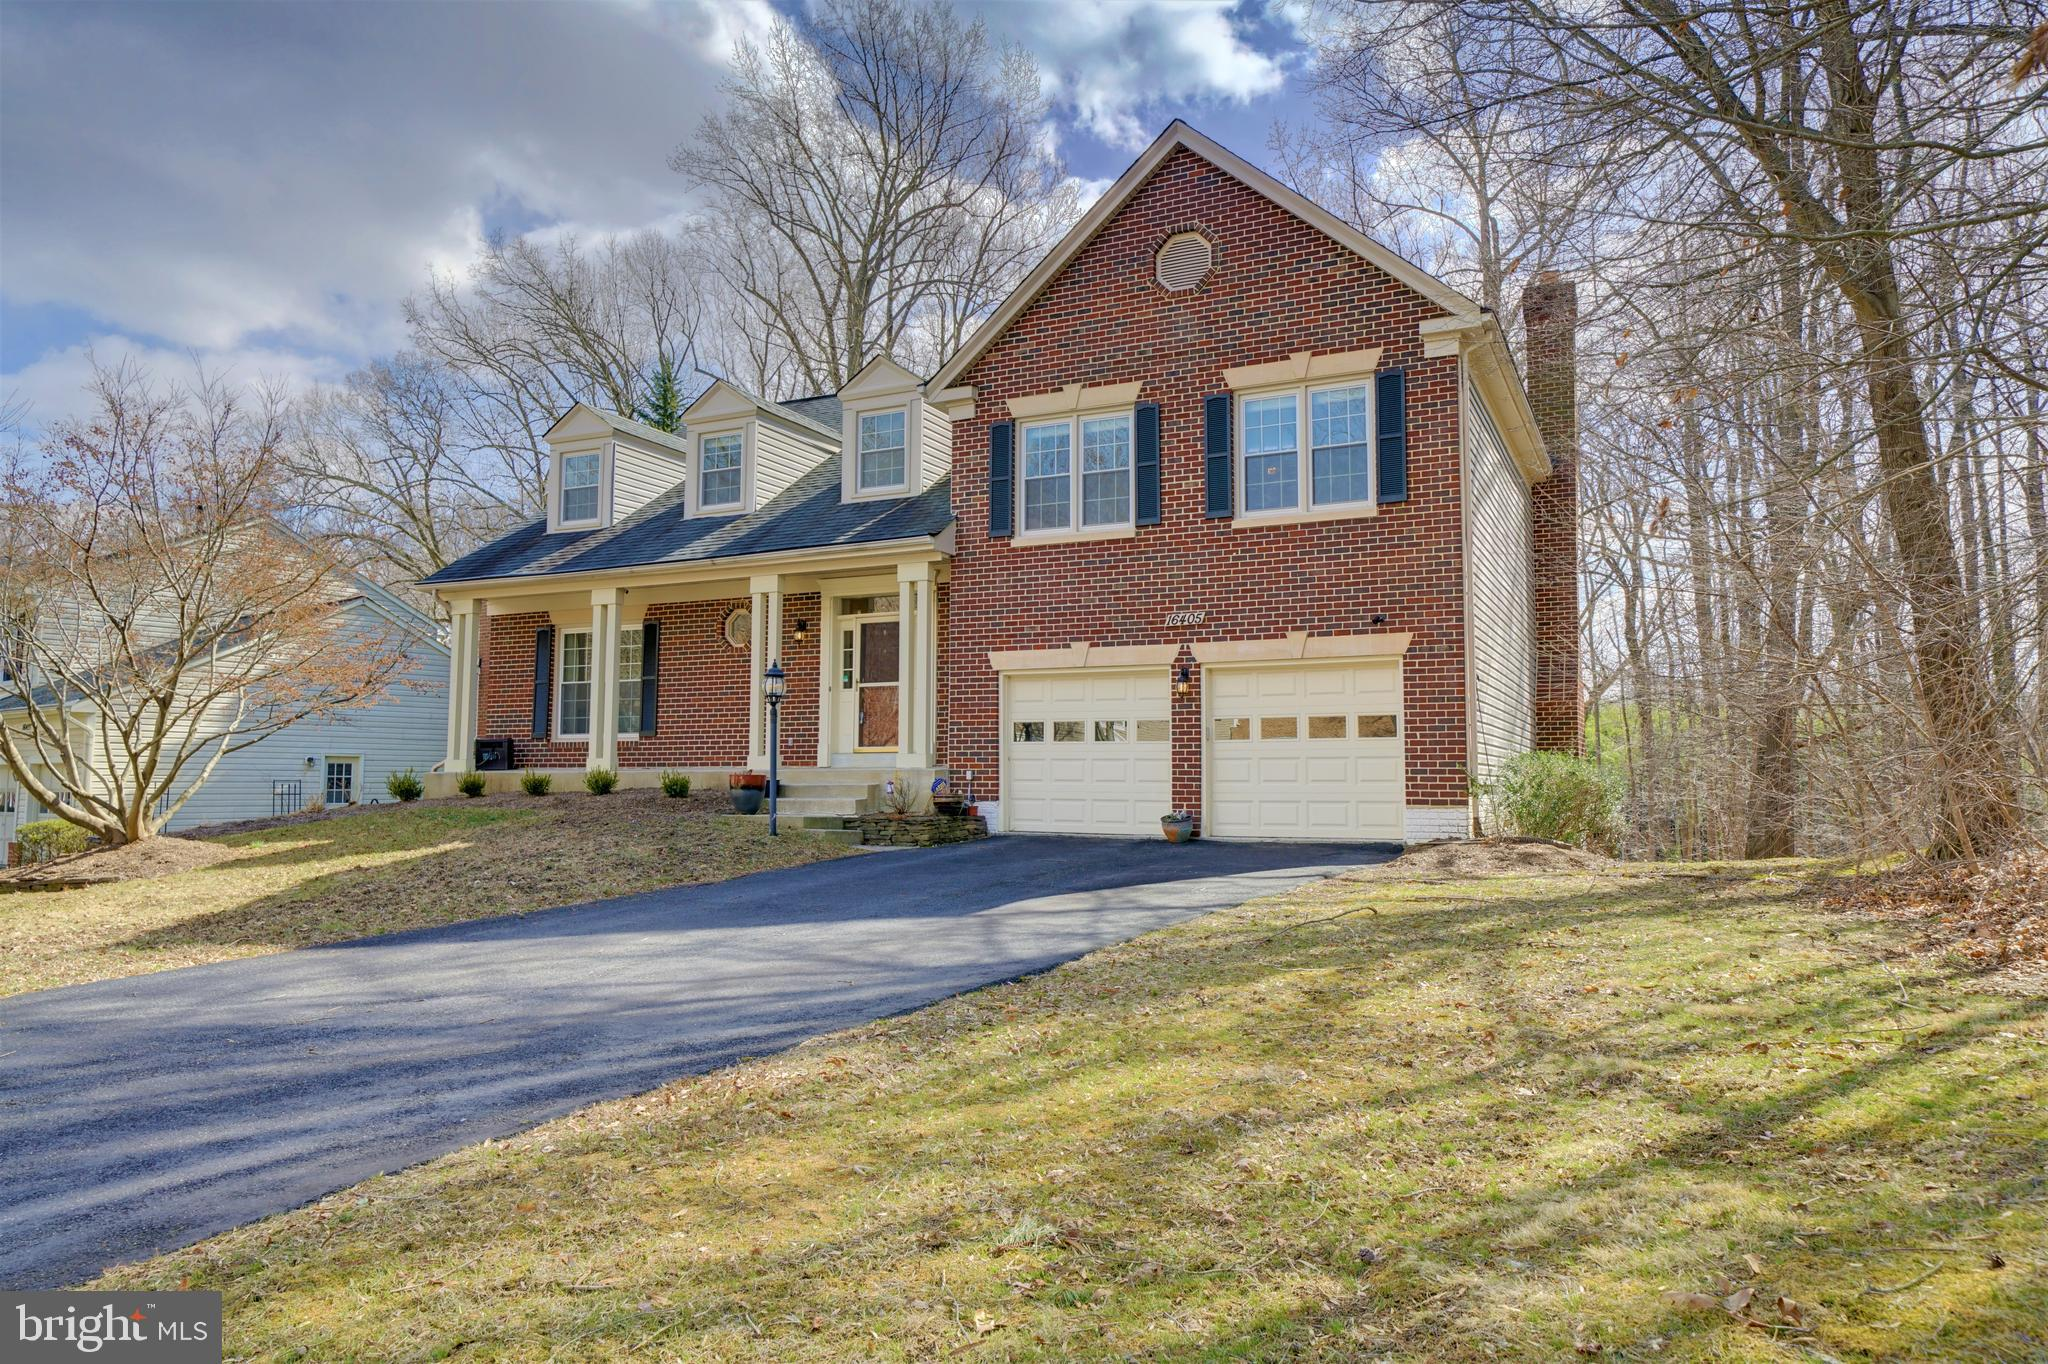 16405 BANBURY LANE, BOWIE, MD 20715